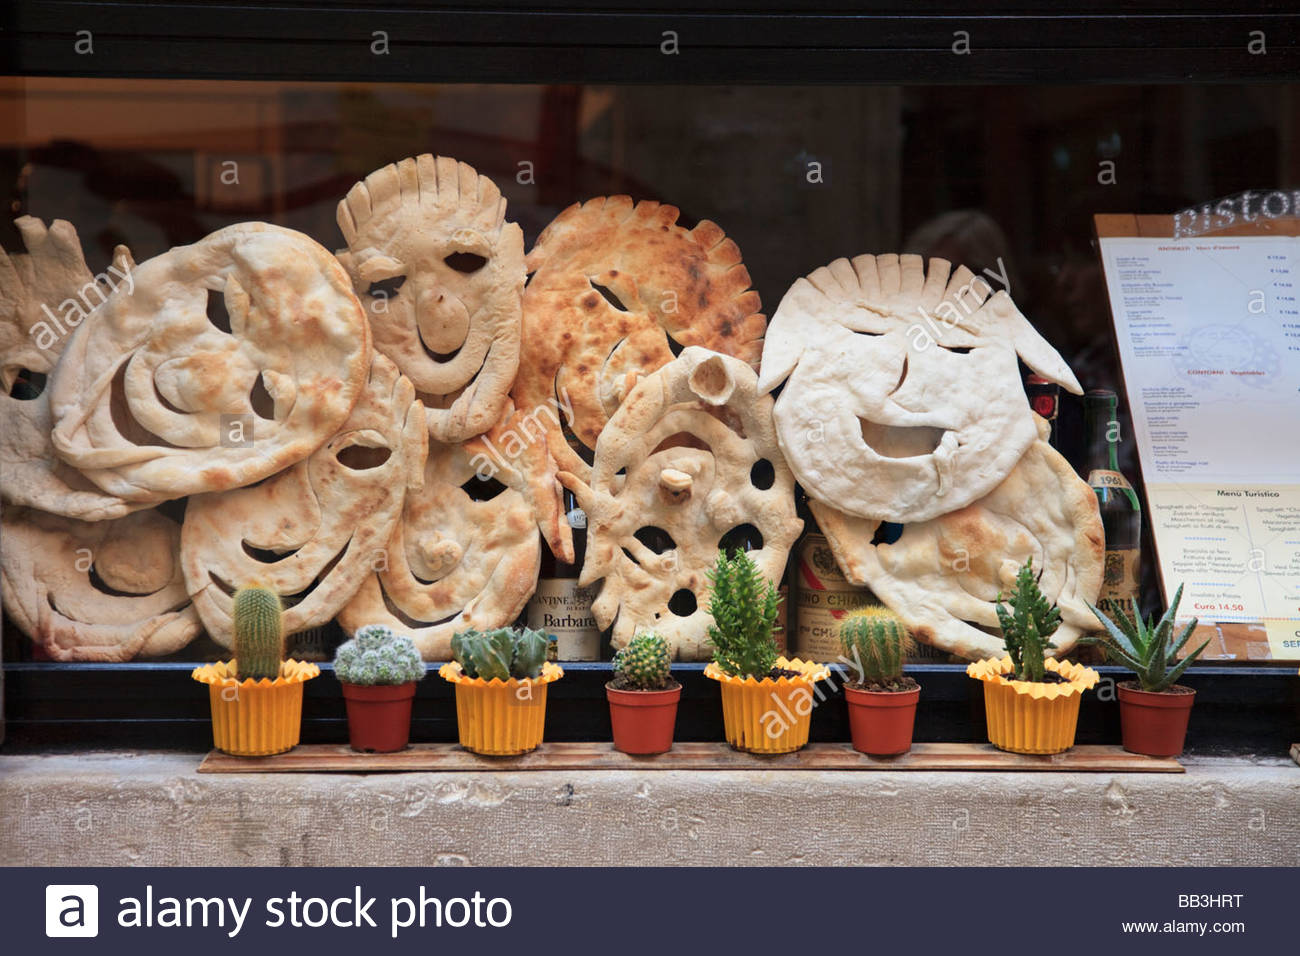 pizza-base-faces-in-a-restaurant-window-BB3HRT.jpg